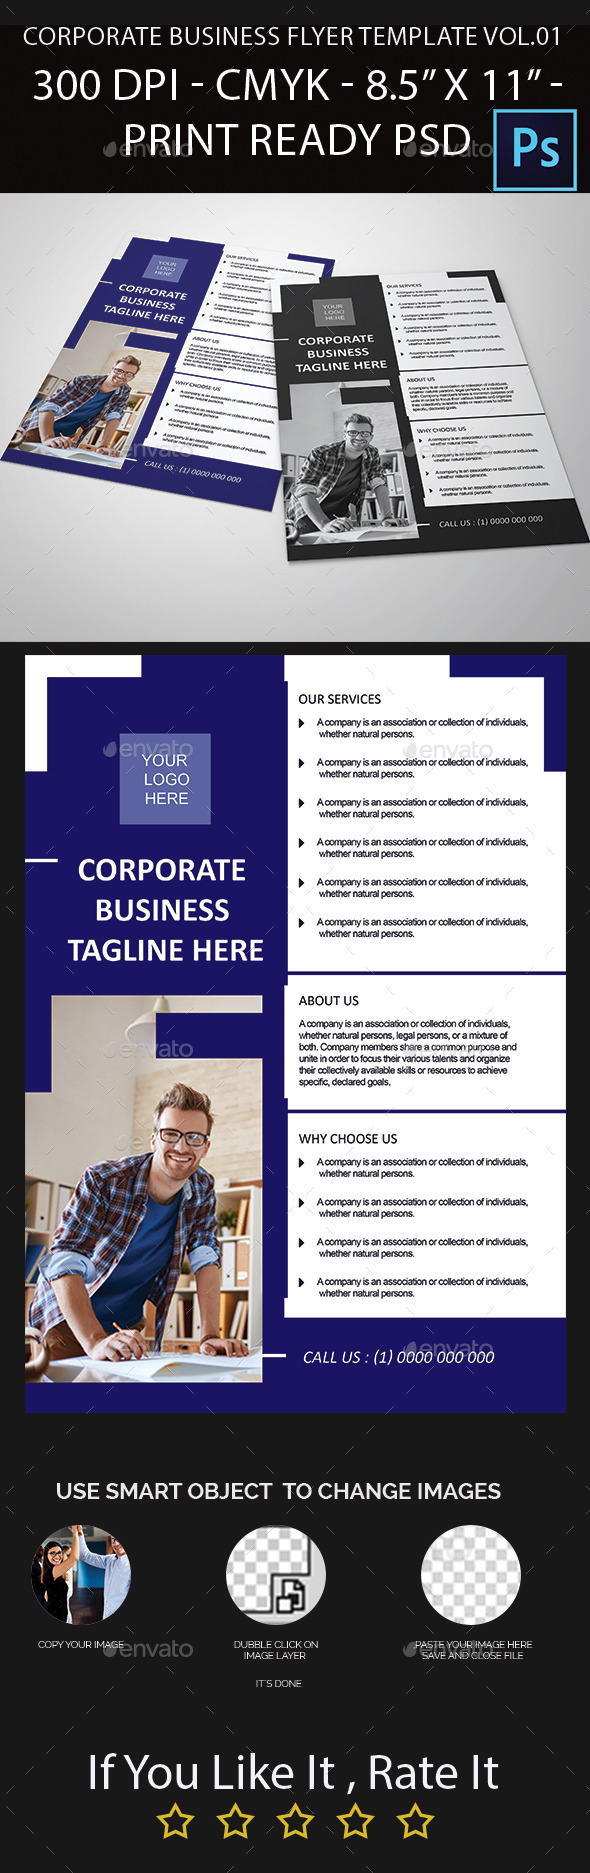 Corporate Business Flyer Template Vol.01